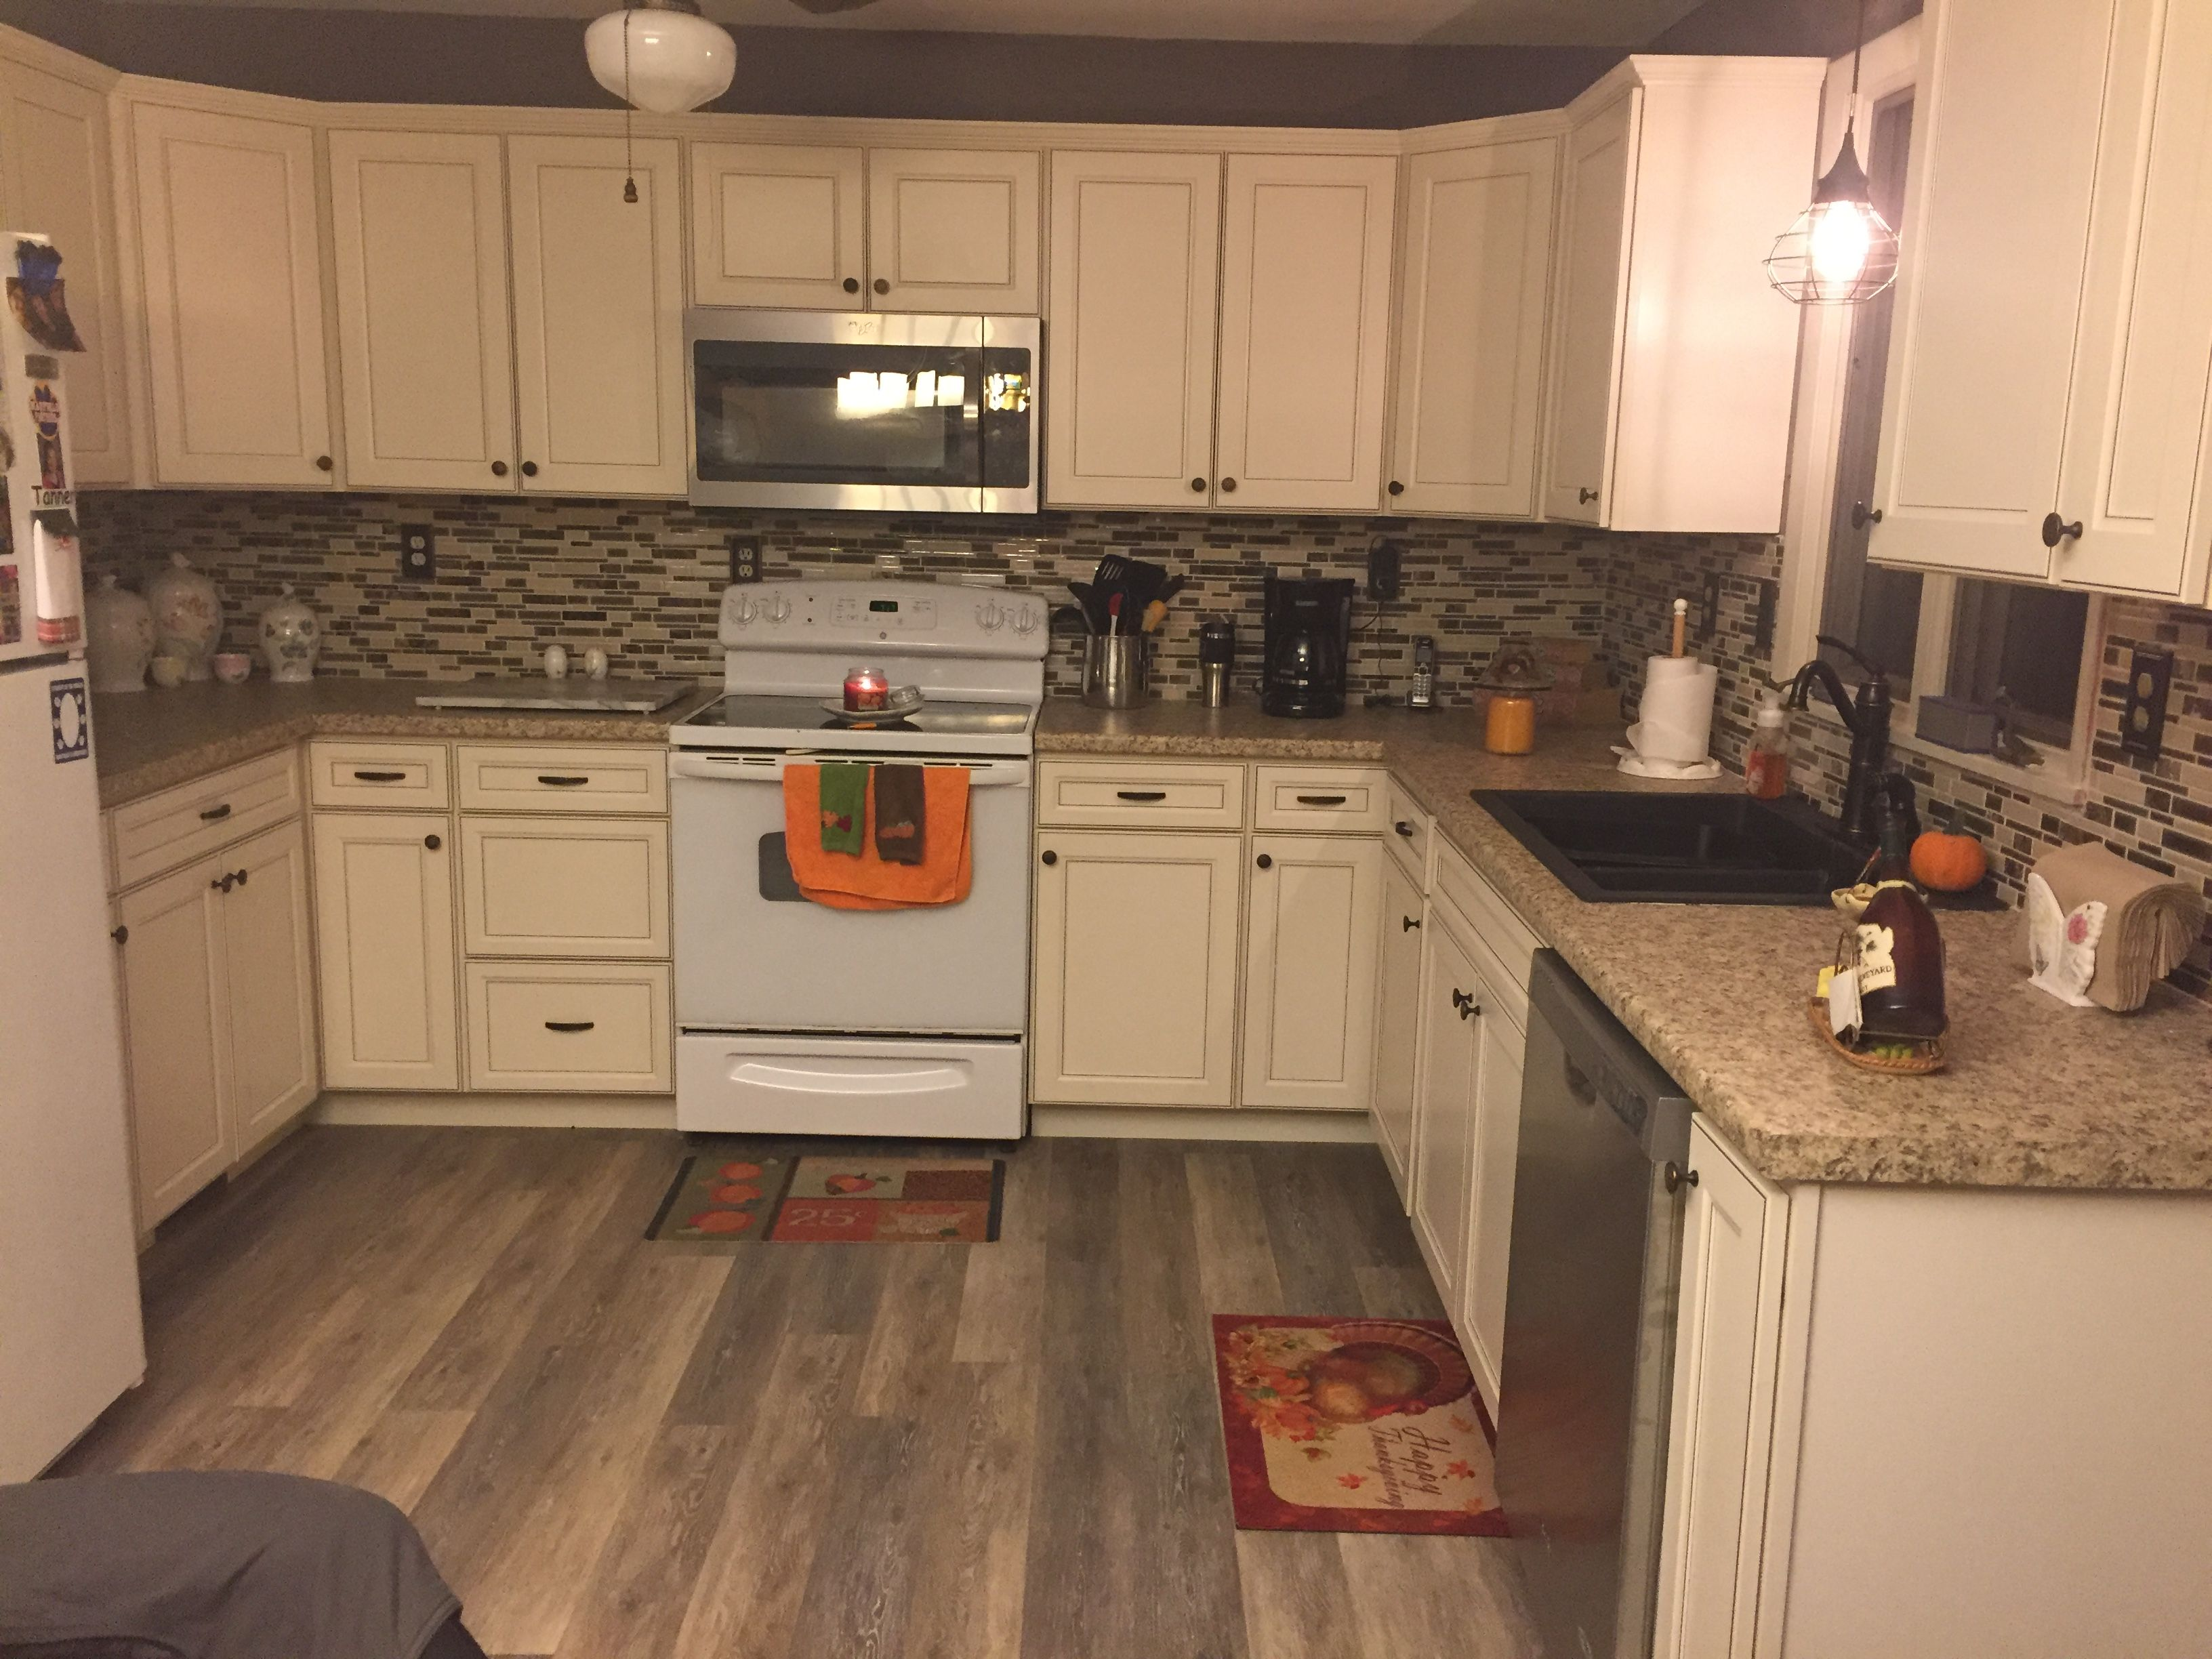 Lowes Caspian Off white cabinets